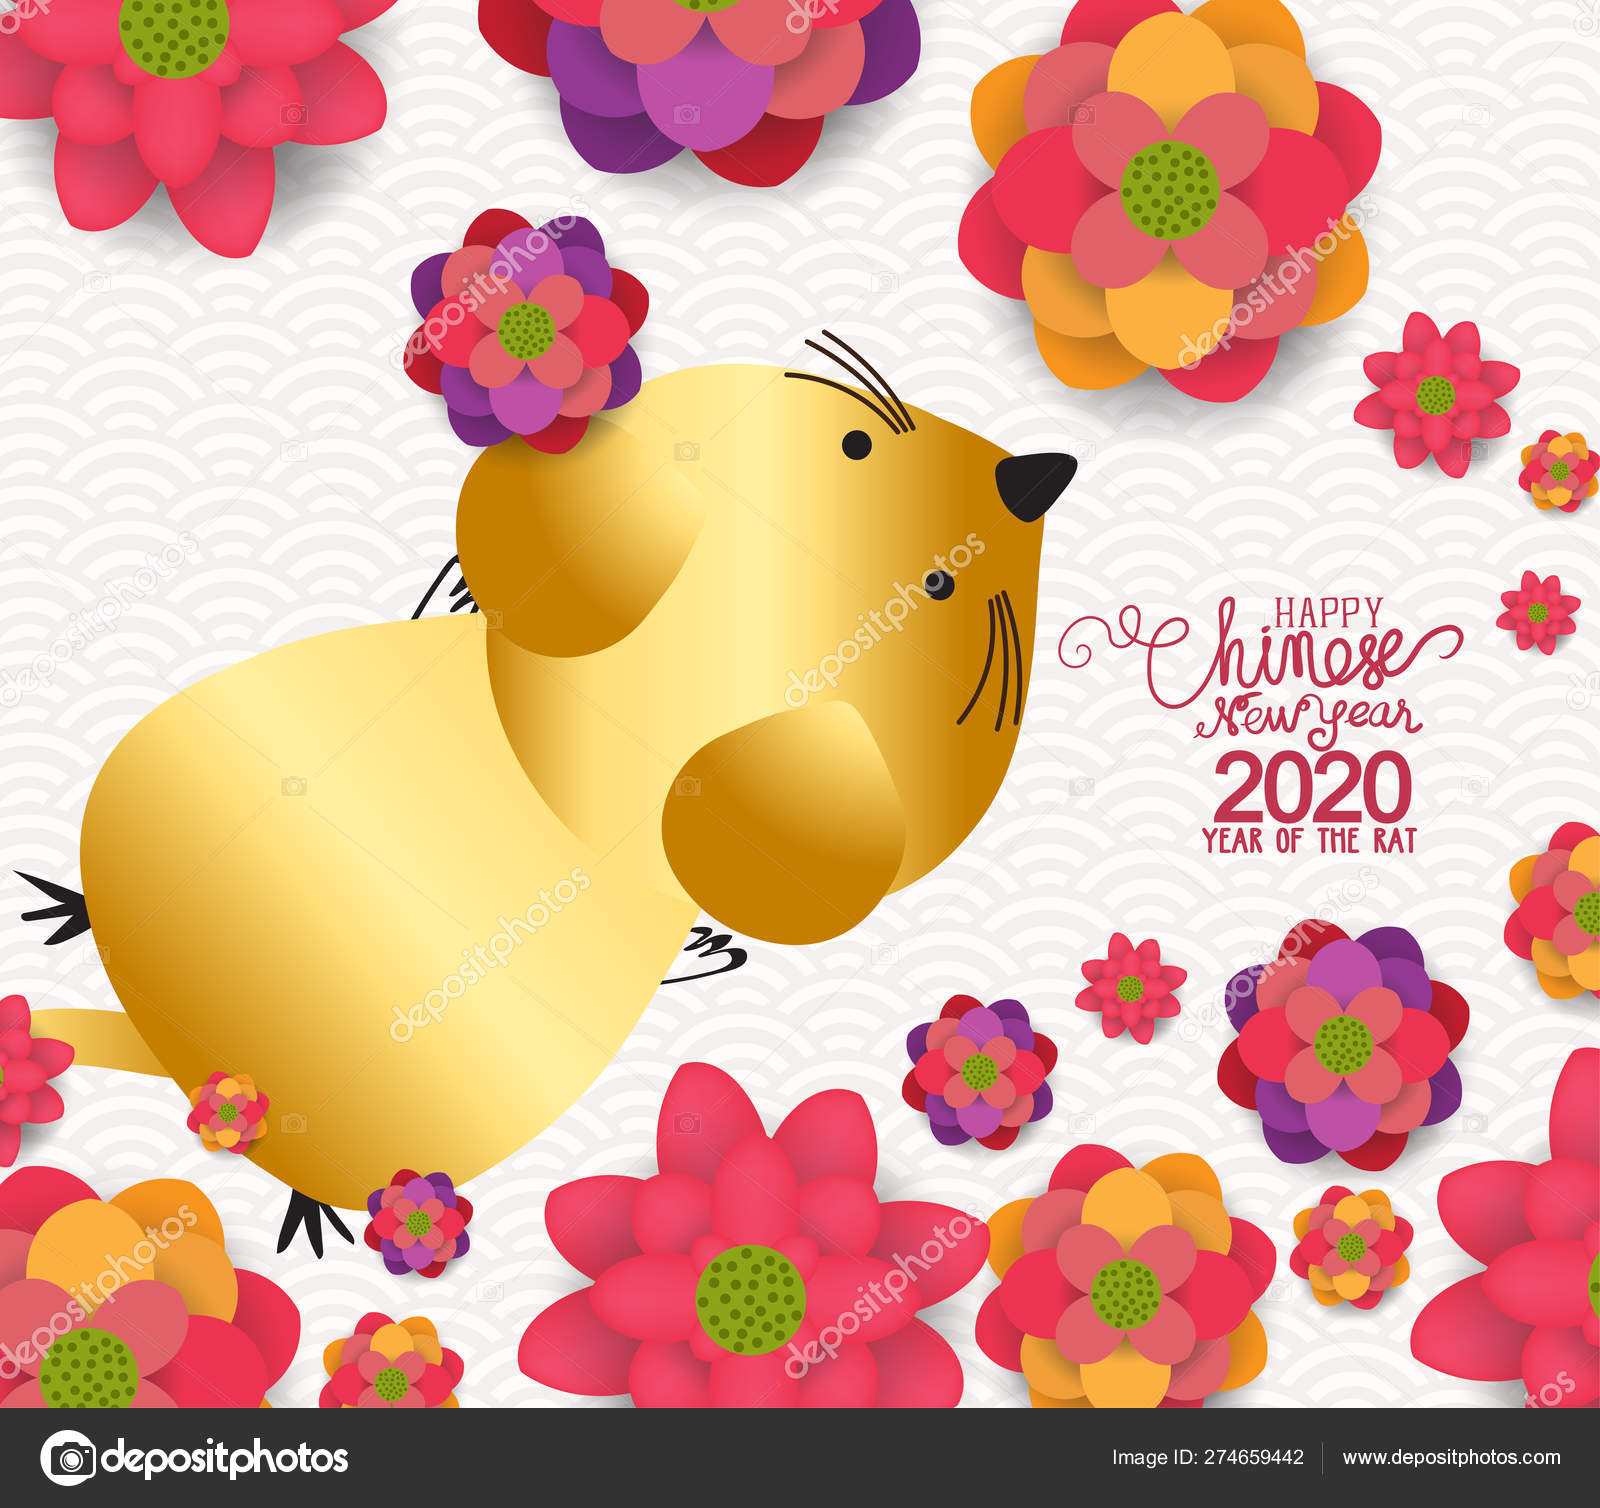 Happy New Year Rat 2020 Chinese New Year Greetings Year ...